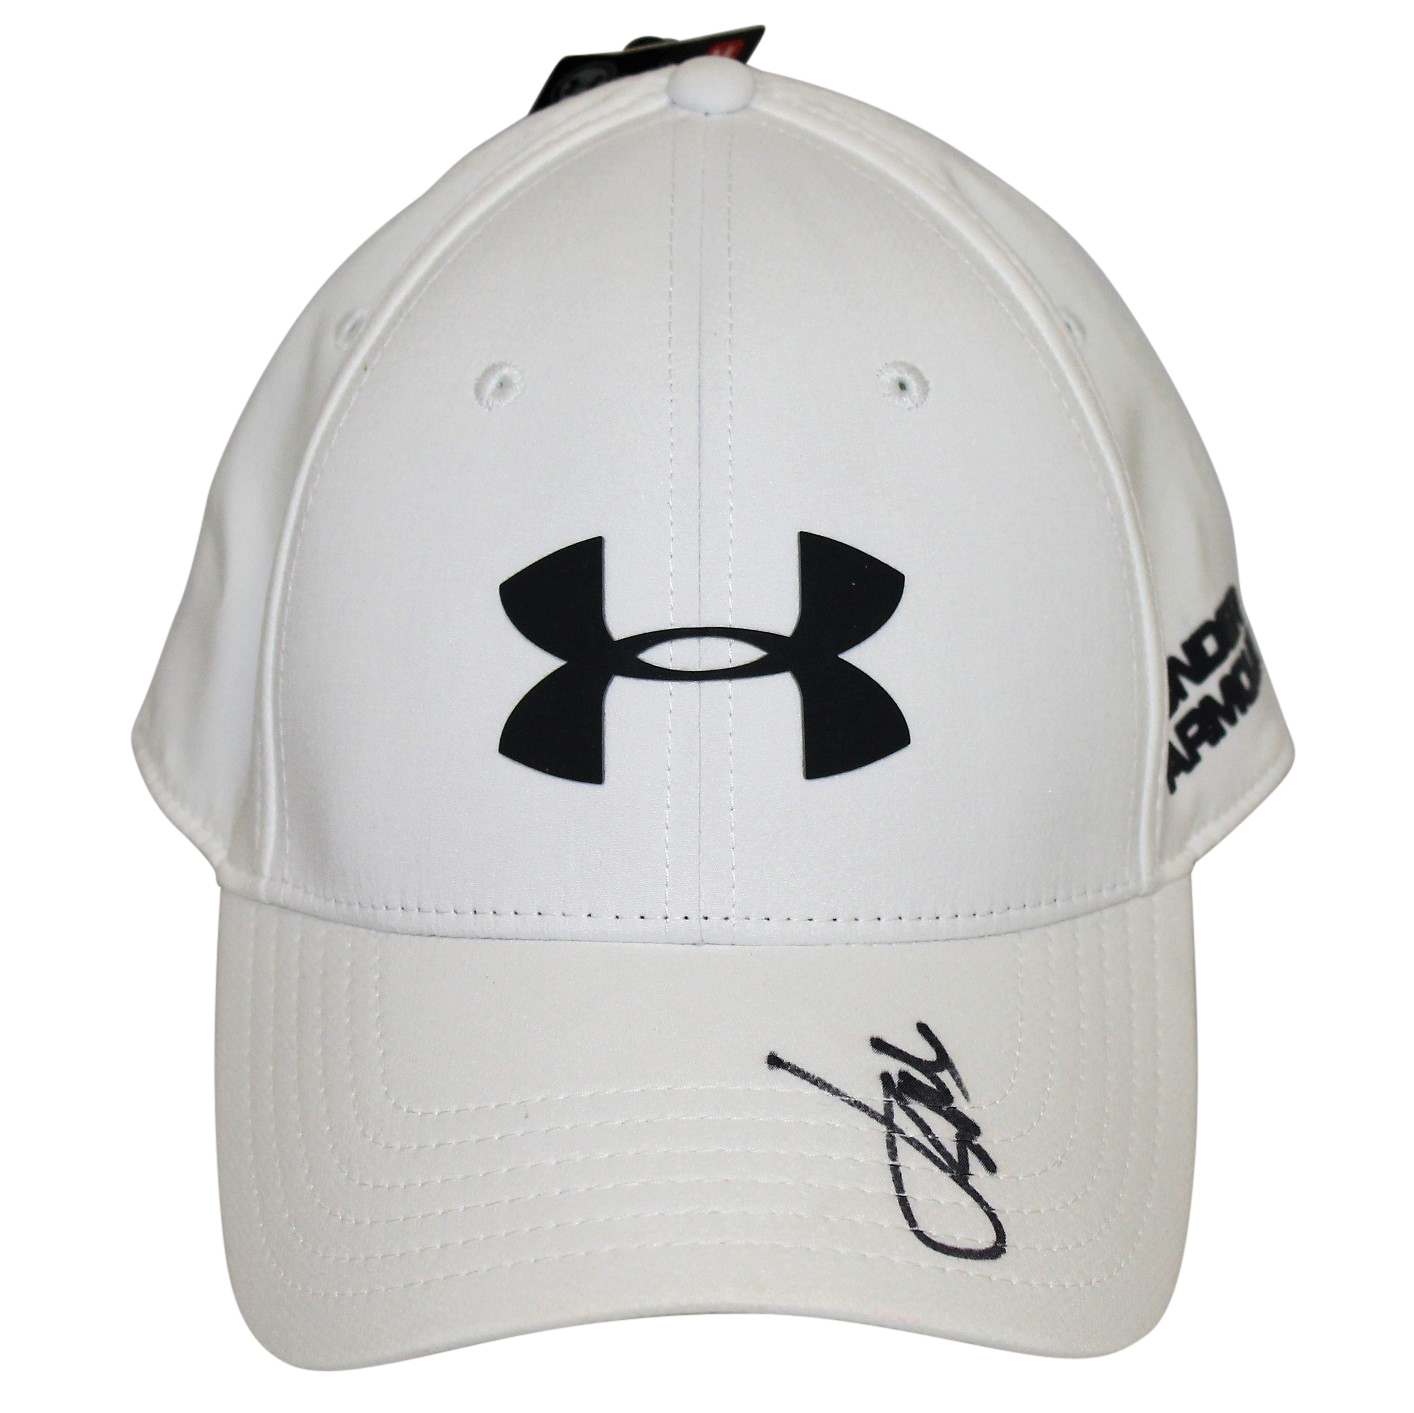 64bb97a12c3a Lot Detail - Jordan Spieth Signed White Under Armour Hat JSA  T83538